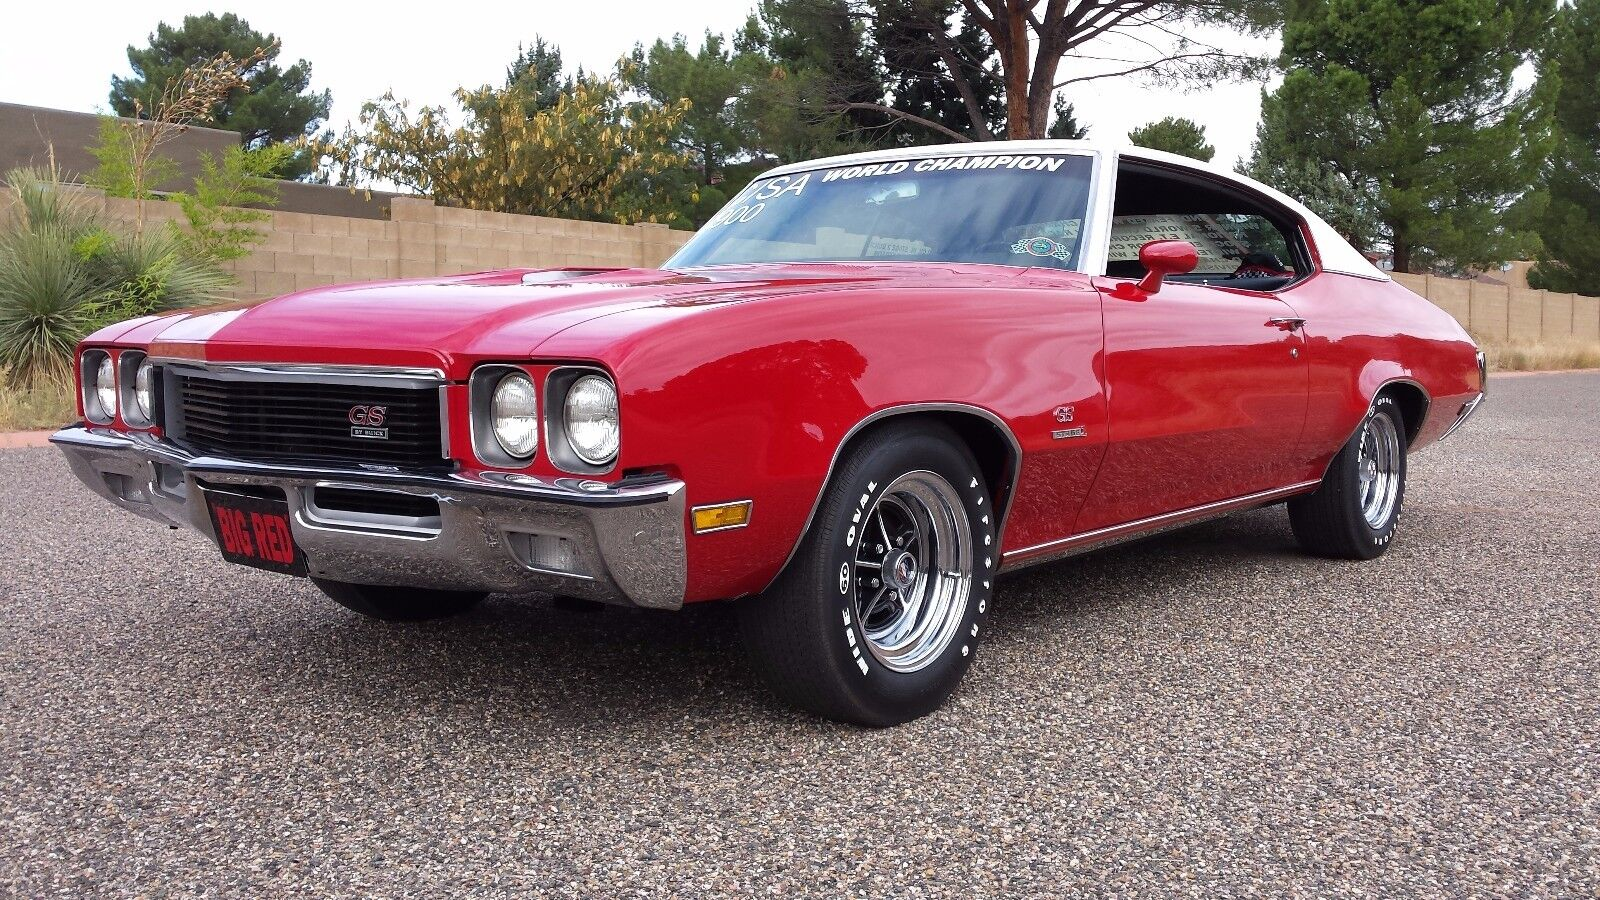 1972 Buick GS STAGE 1 : BORN OUT OF BUICK MOTOR DIVISION'S RESEARCH AND DEVELOPMENT FOR 1972 NHRA SEASON